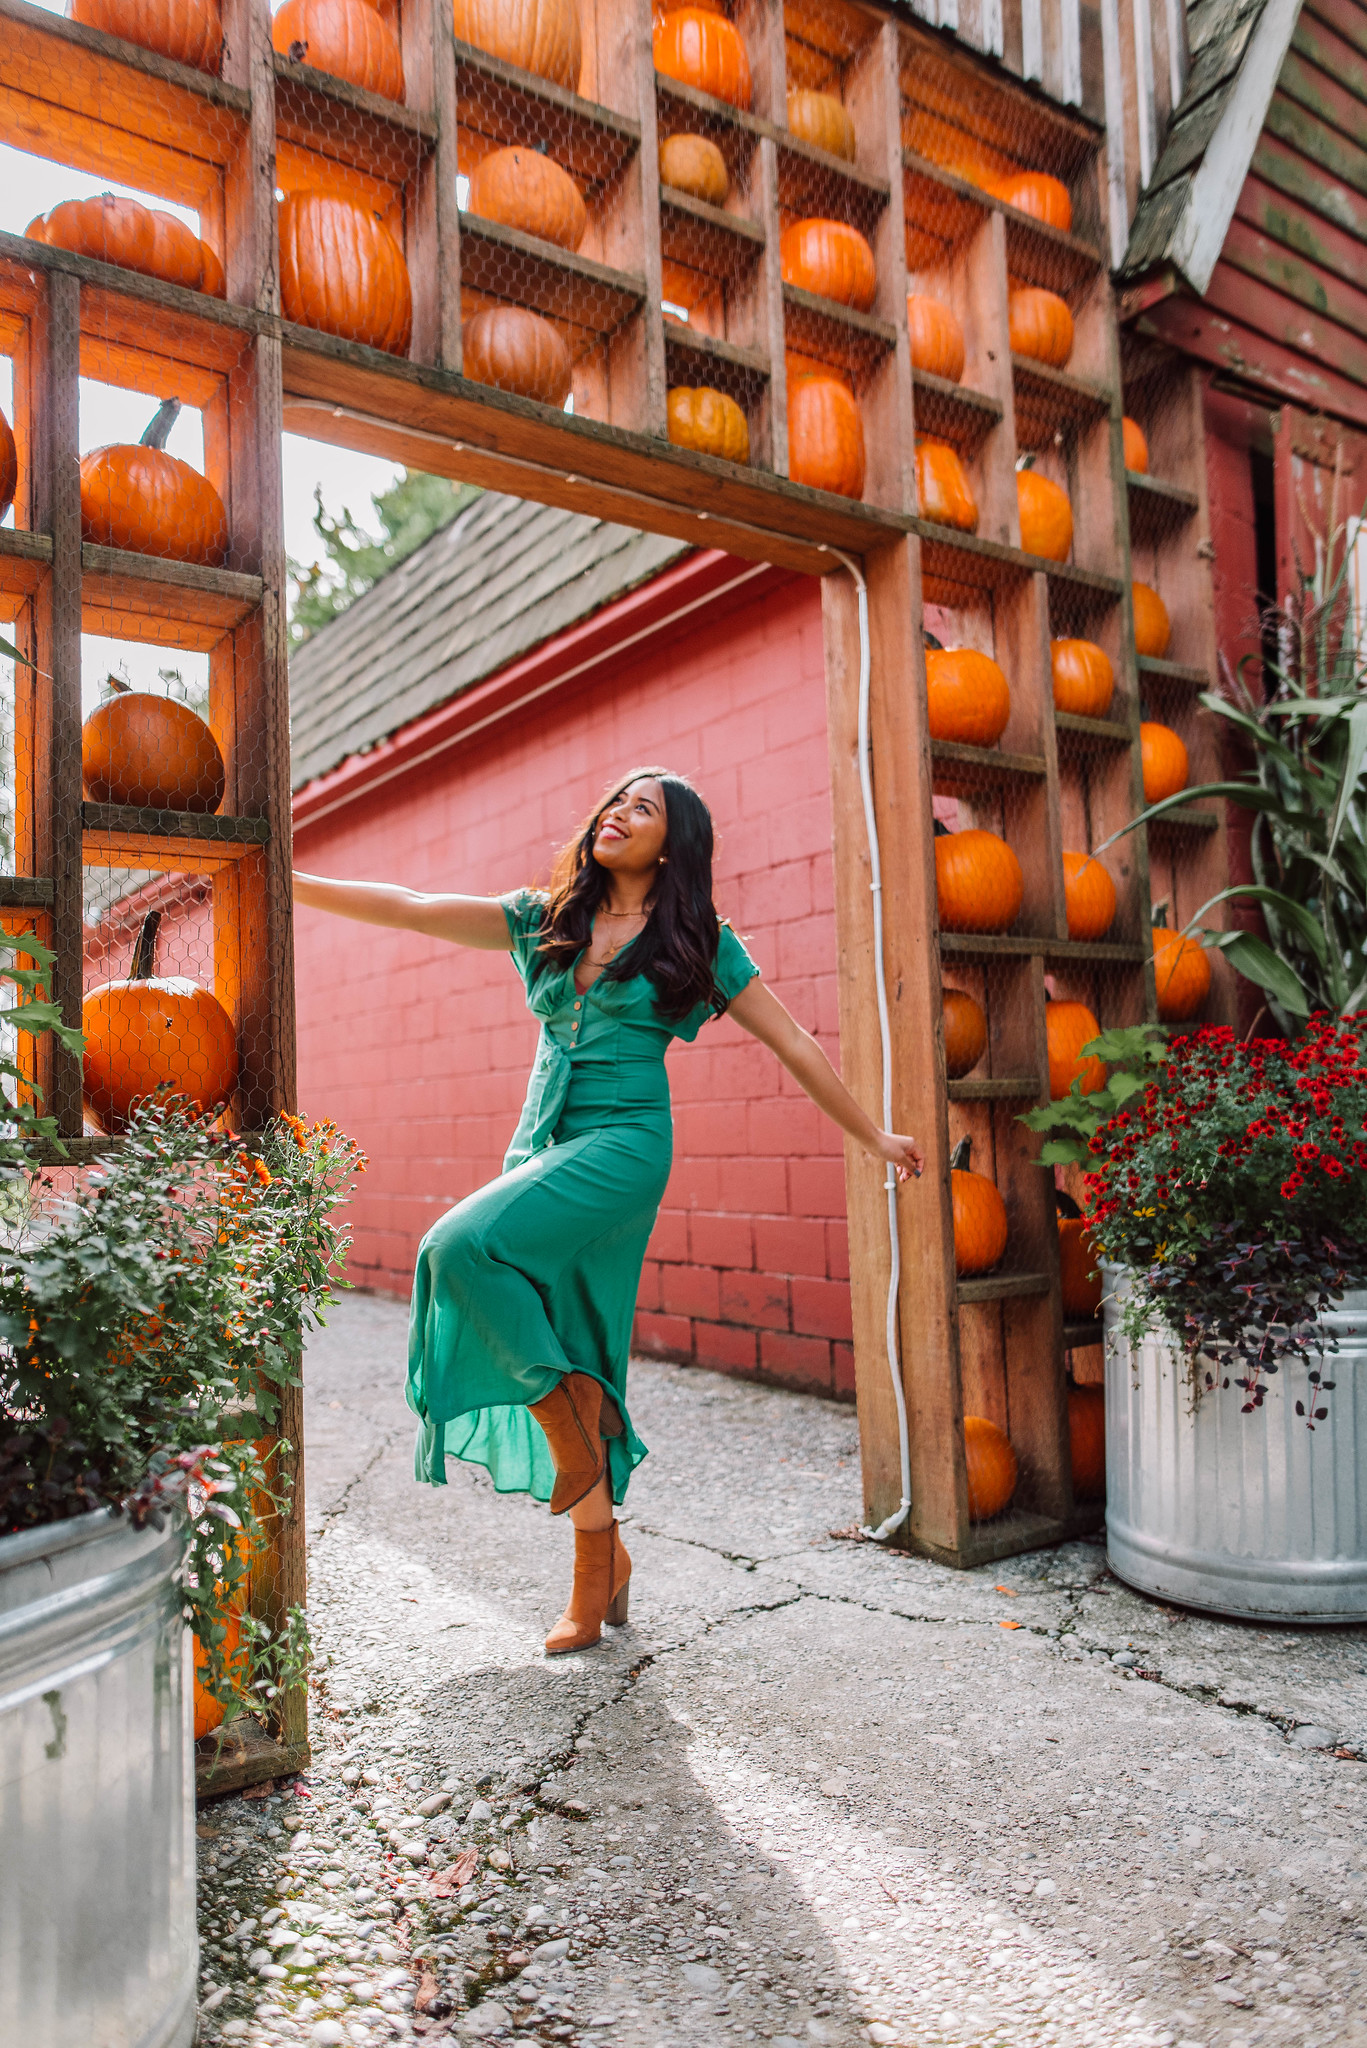 How to Pose at a Pumpkin Patch: 8 Poses You Can Try